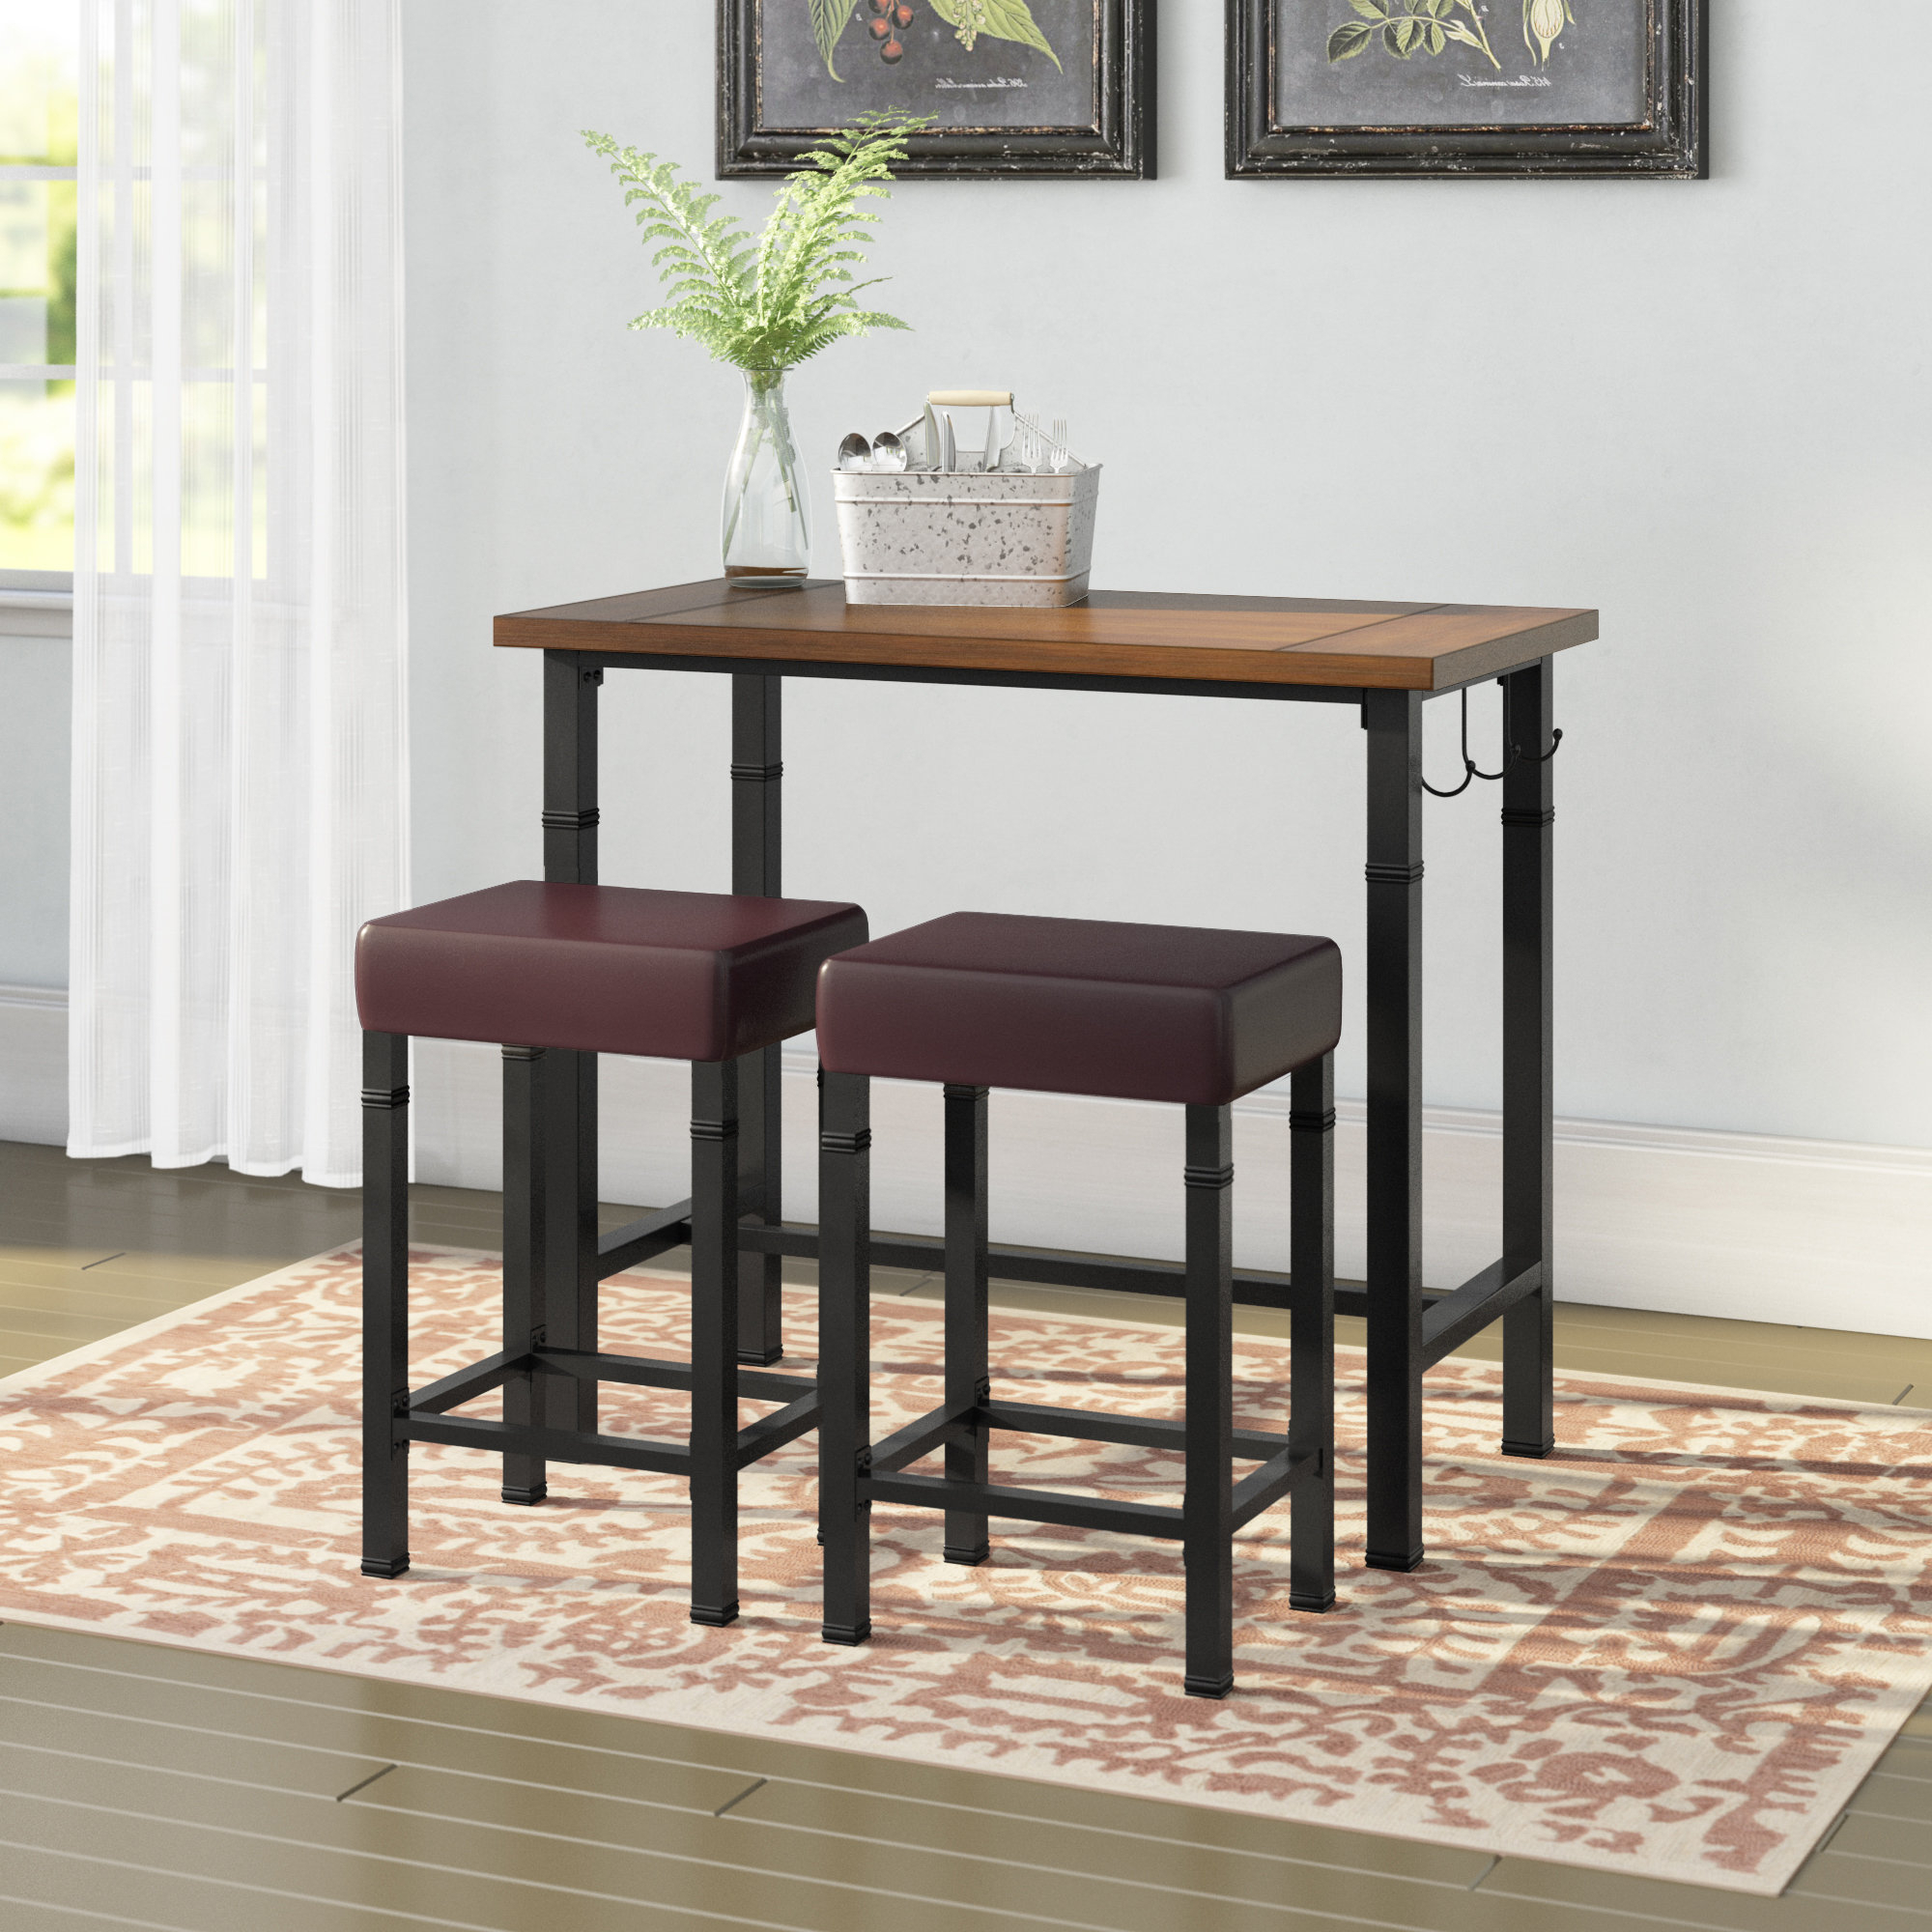 Popular Penelope 3 Piece Counter Height Wood Dining Sets Throughout Laurel Foundry Modern Farmhouse Sevigny 3 Piece Pub Table Set (View 19 of 25)